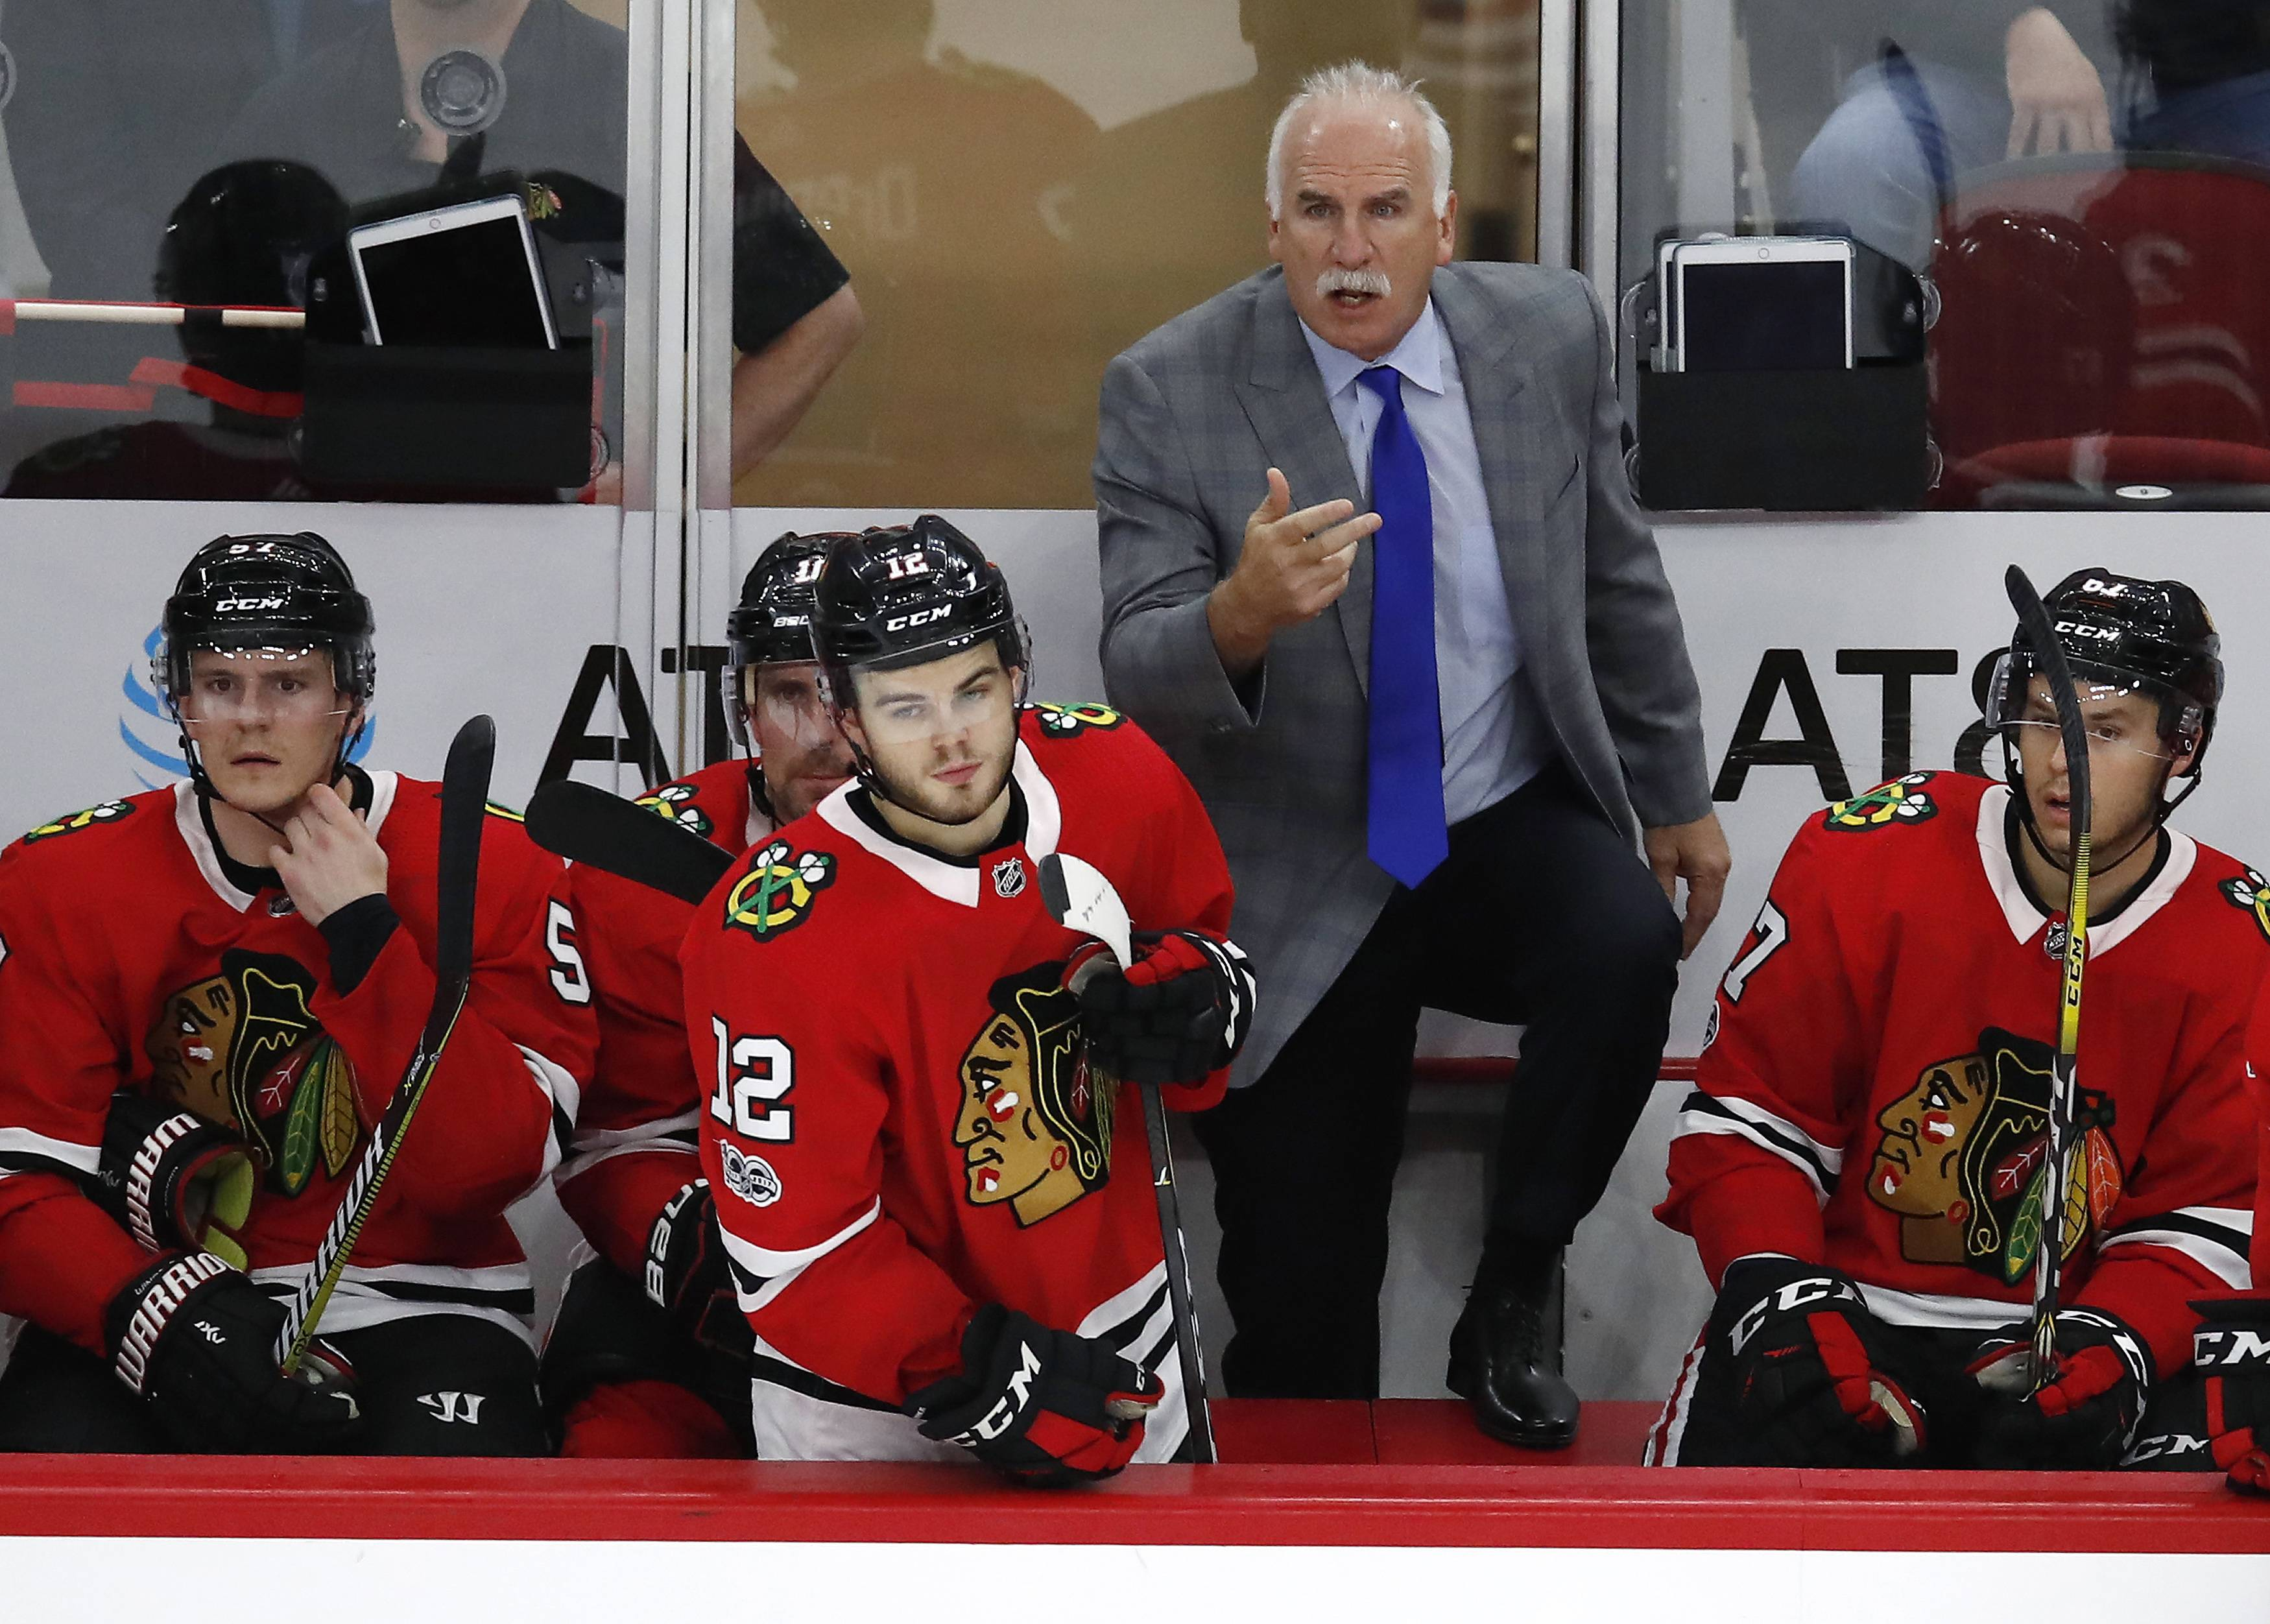 After his challenge was dismissed, Chicago Blackhawks coach Joel Quenneville tries to call over an official during the third period of the team's game against the Minnesota Wild on Thursday in Chicago.